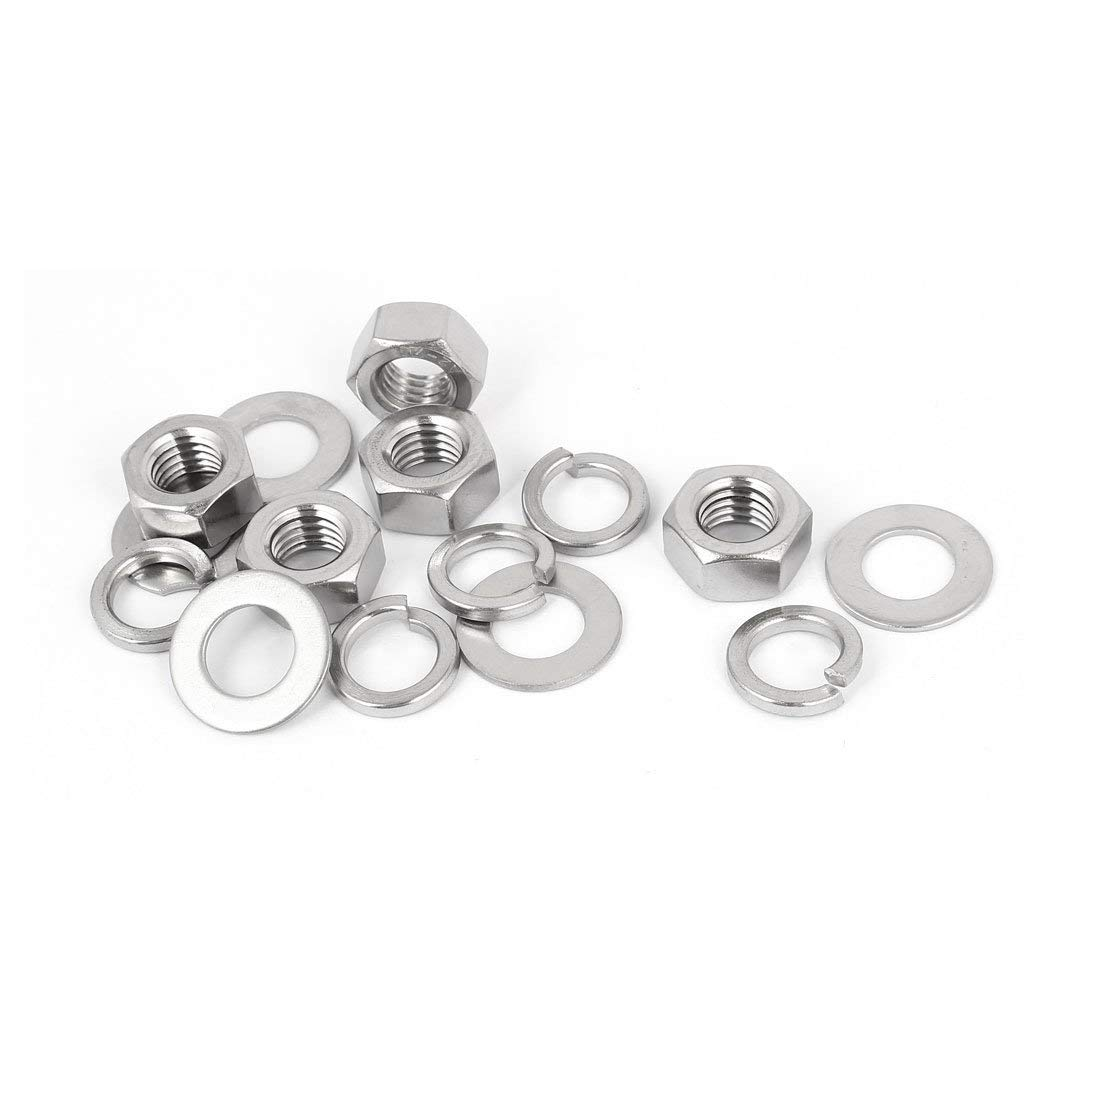 uxcell M12 Thread Diameter 304 Stainless Steel Hex Nut Flat Washer Split Lock 5 Sets